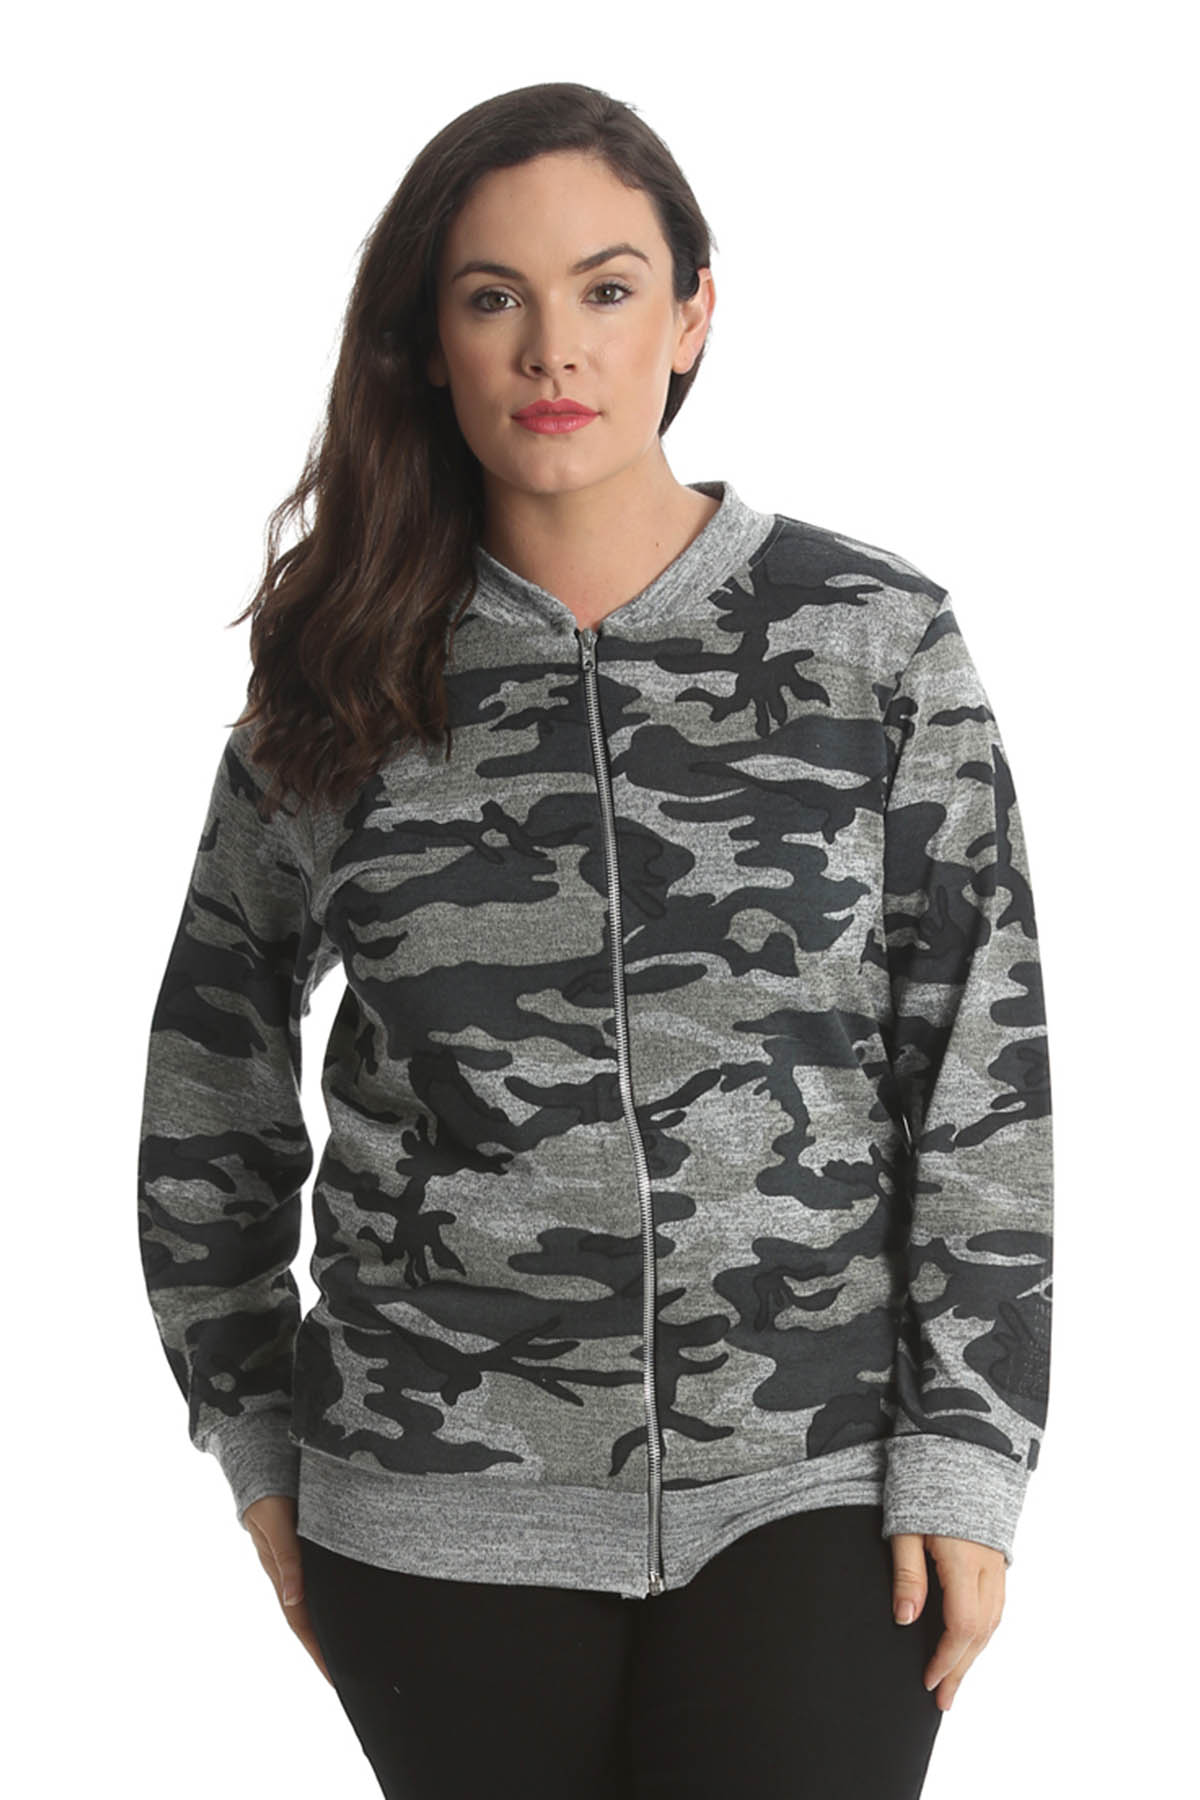 Plus Size Clothing Outlet